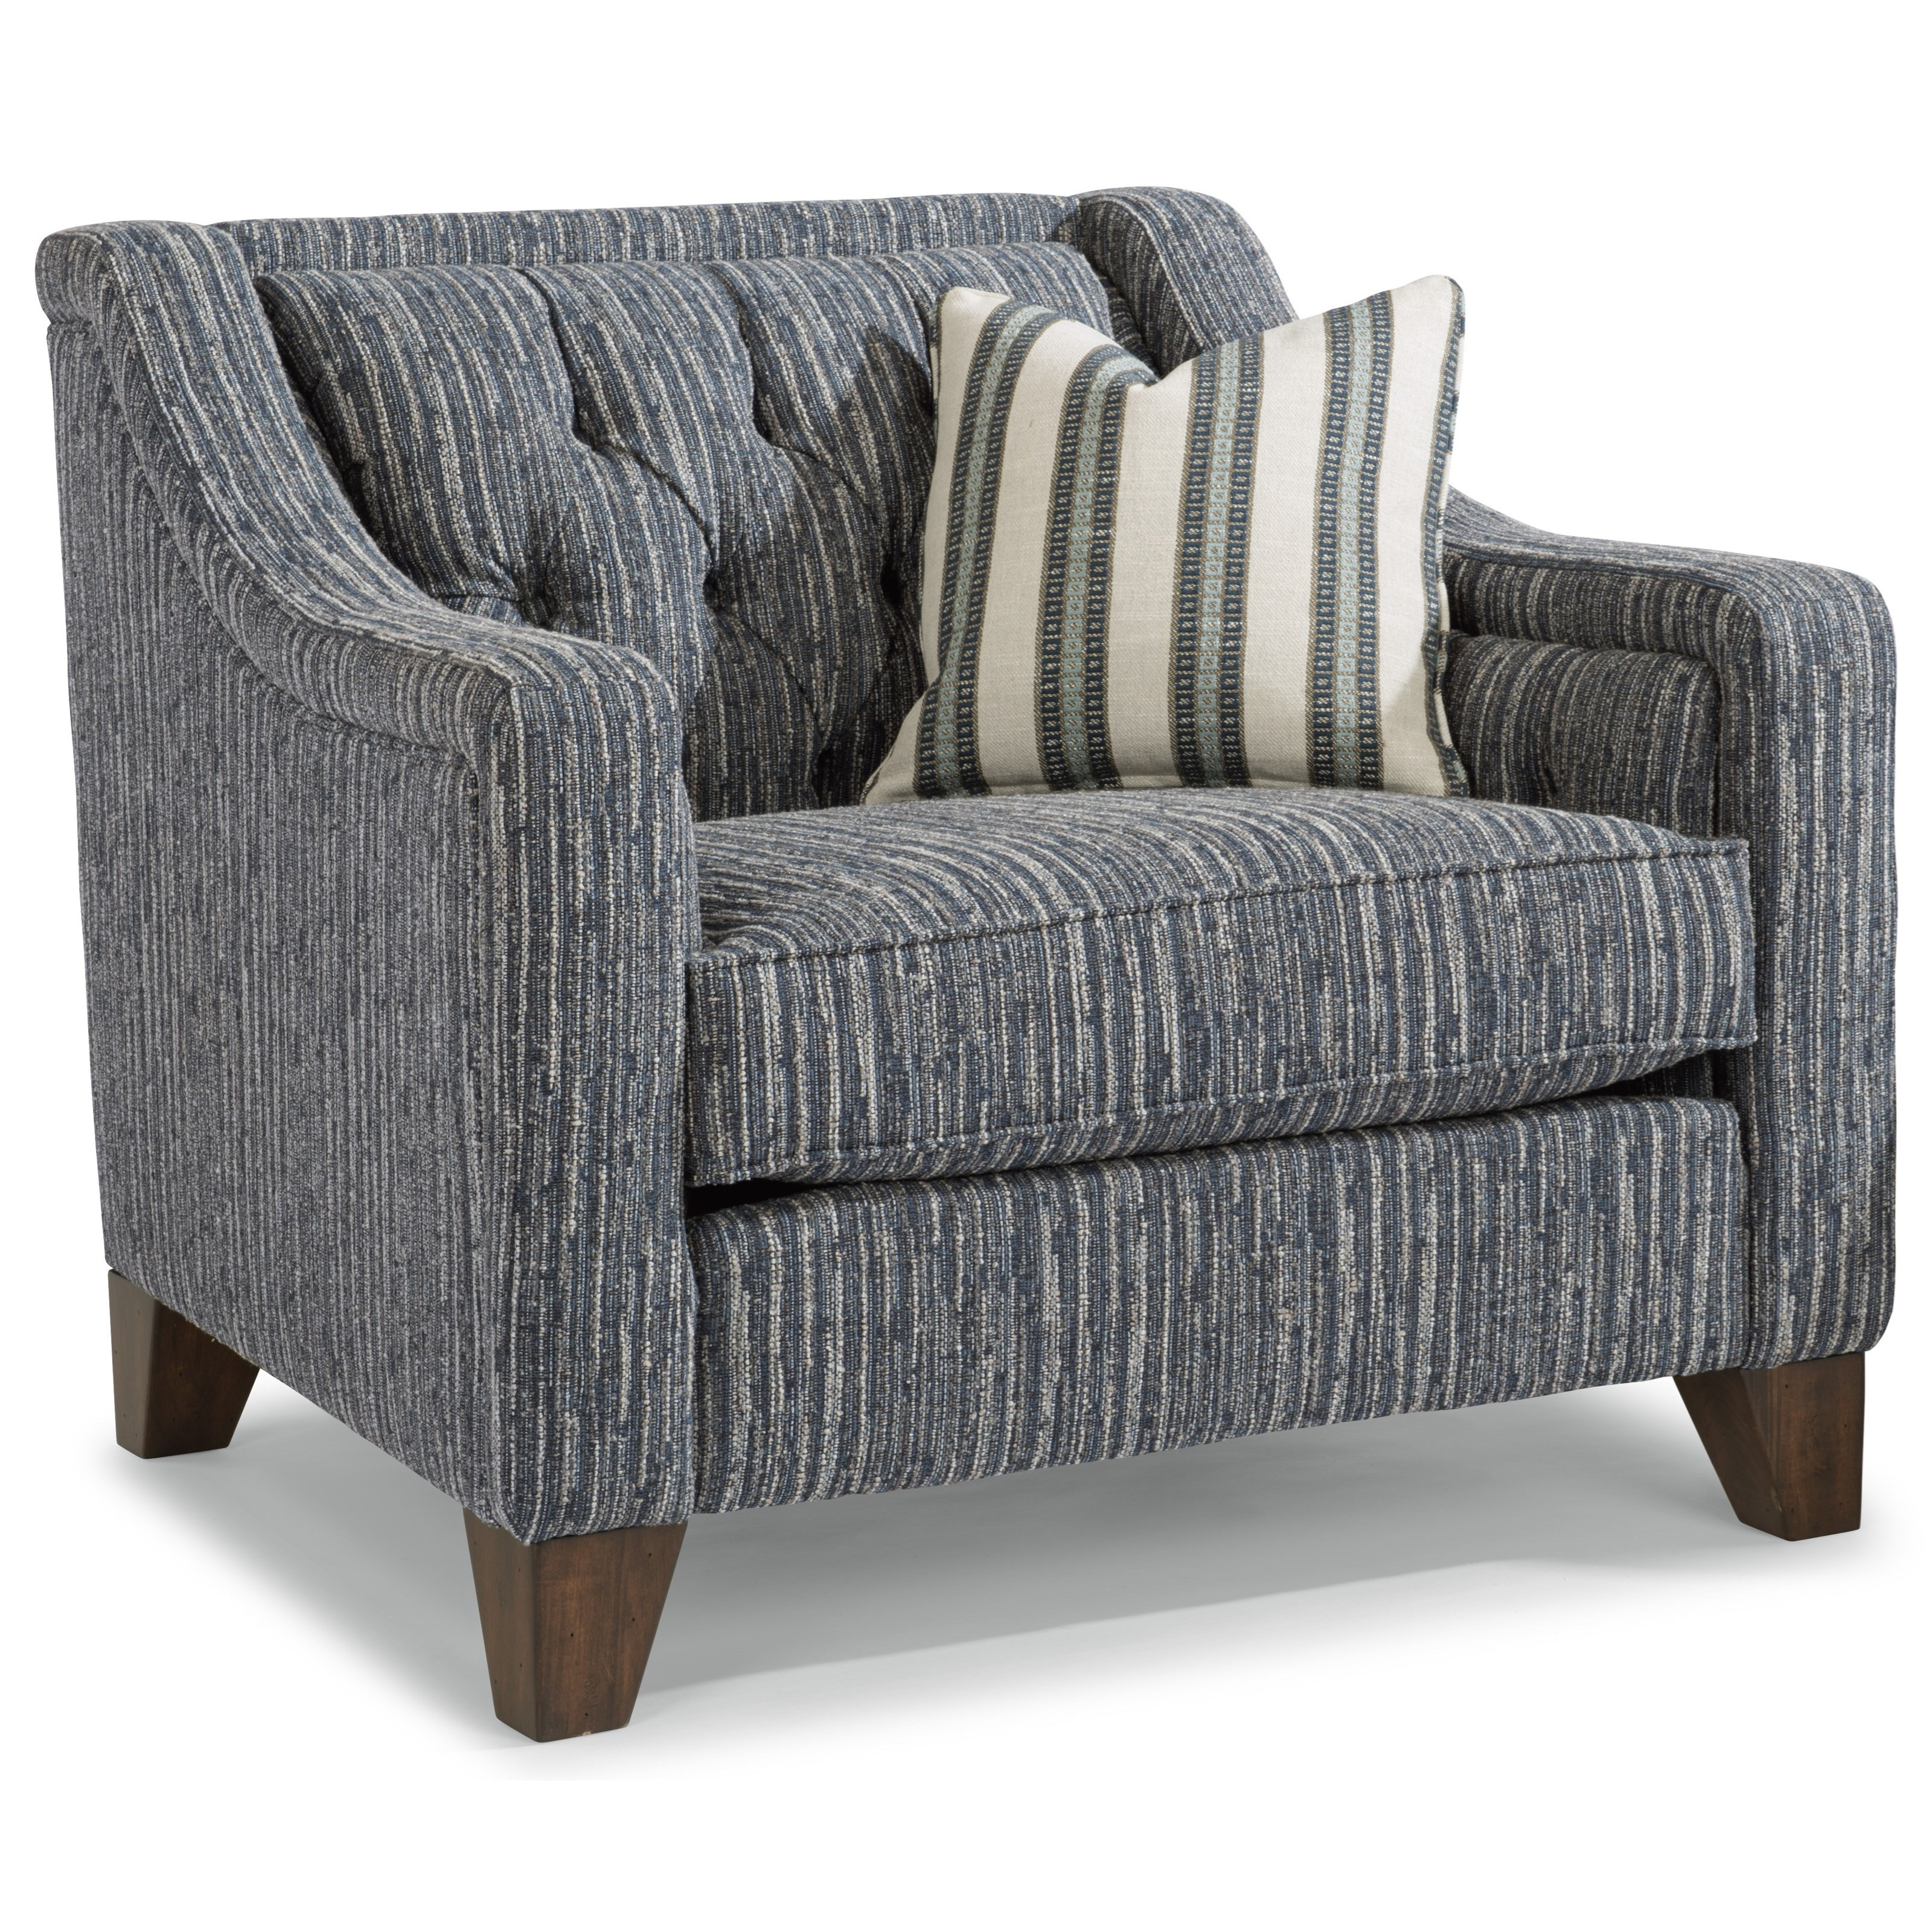 Sullivan Chair by Flexsteel at Rooms and Rest